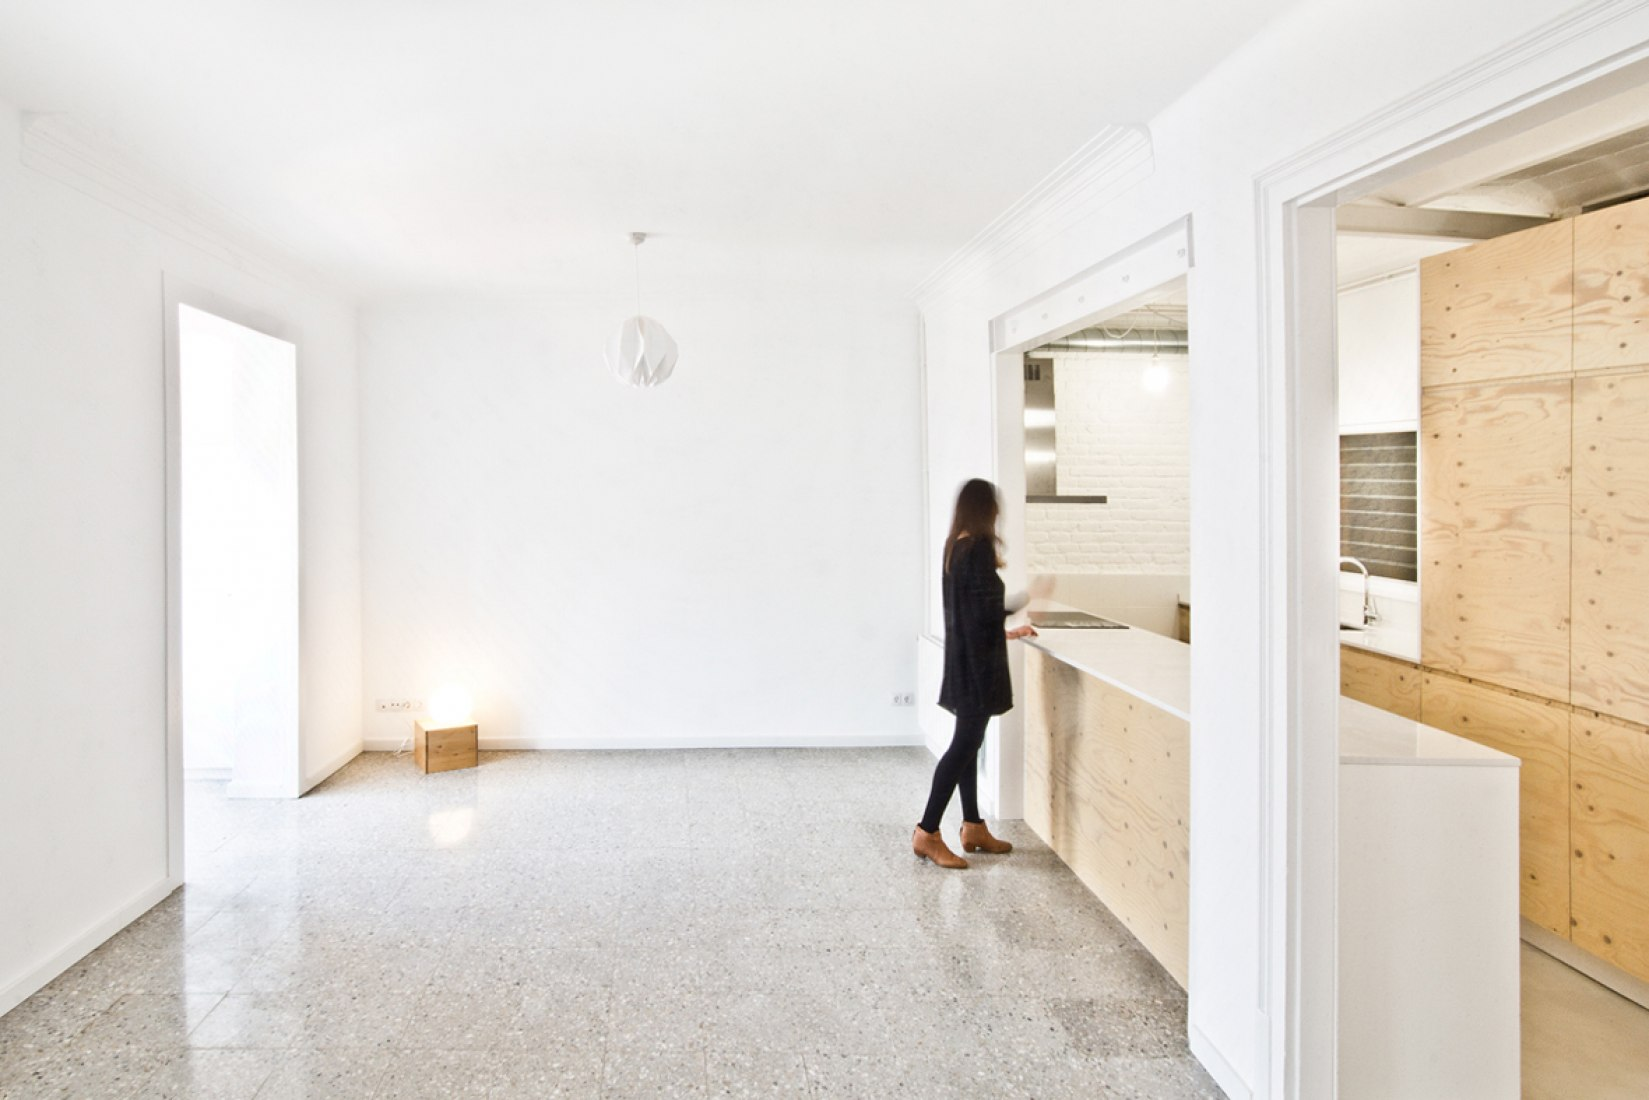 Interior renovation of an apartment in casp street barcelona by carles enrich photography carles enrich click above to see larger image